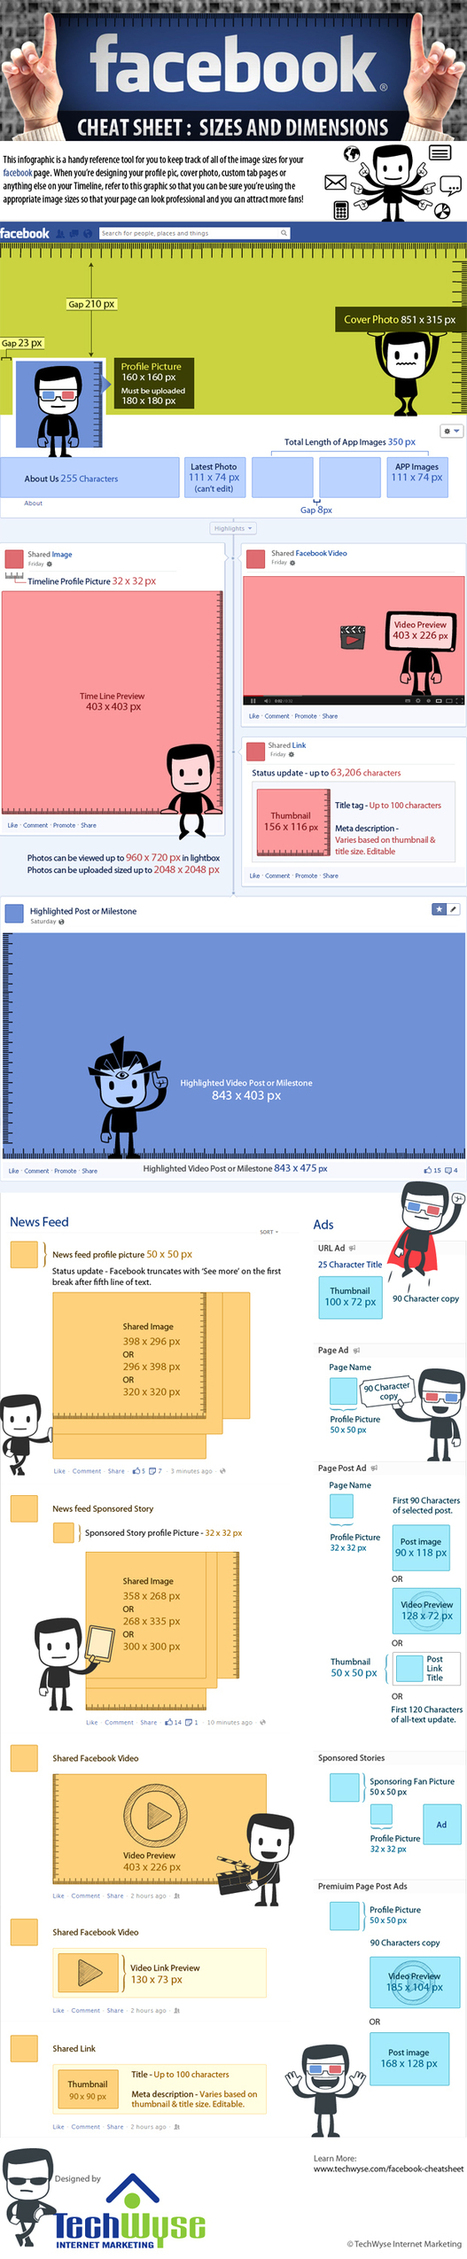 Facebook Cheat Sheet: Image Size and Dimensions - TechWyse | Social Marketing | Scoop.it